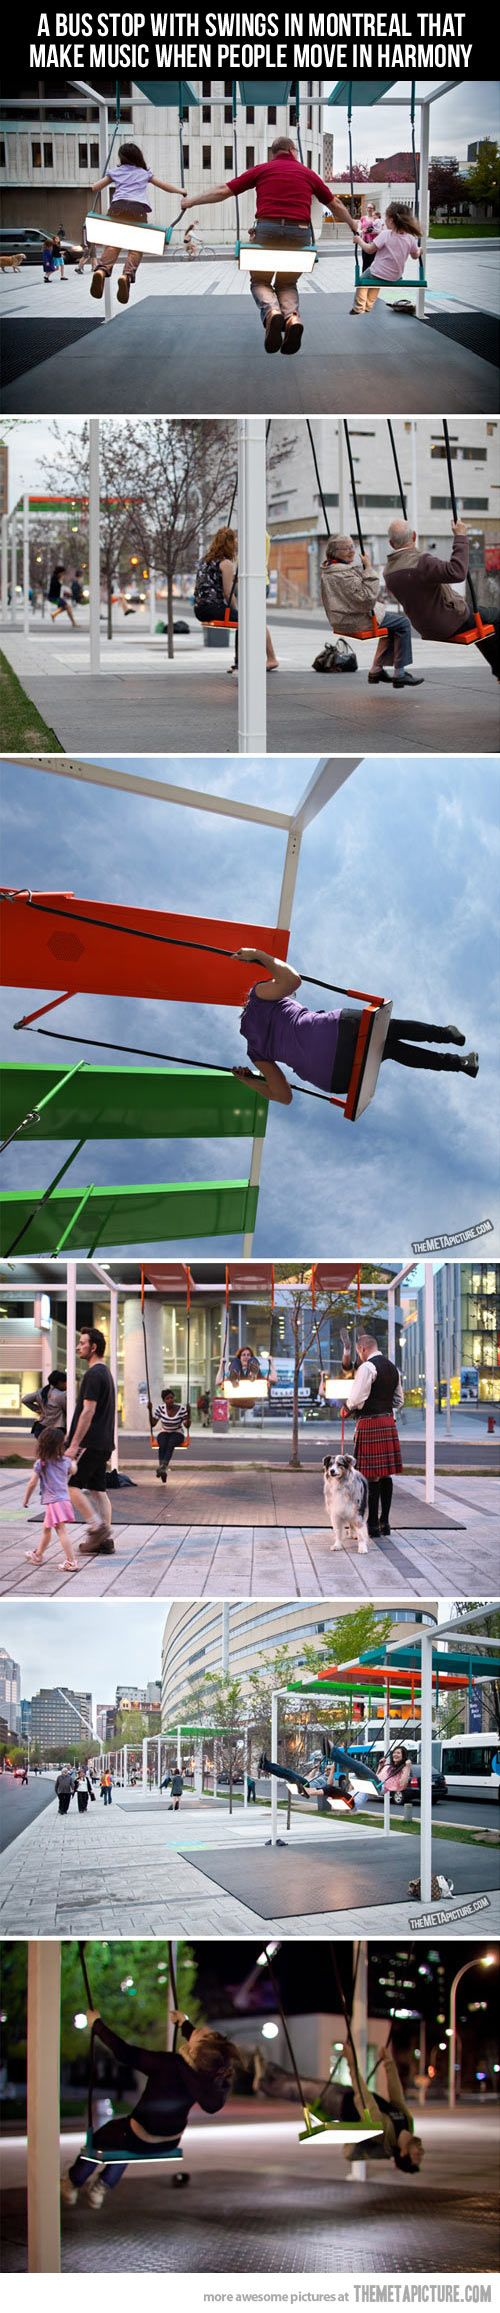 A bus stop with swings in Montreal that make music when people move in harmony.